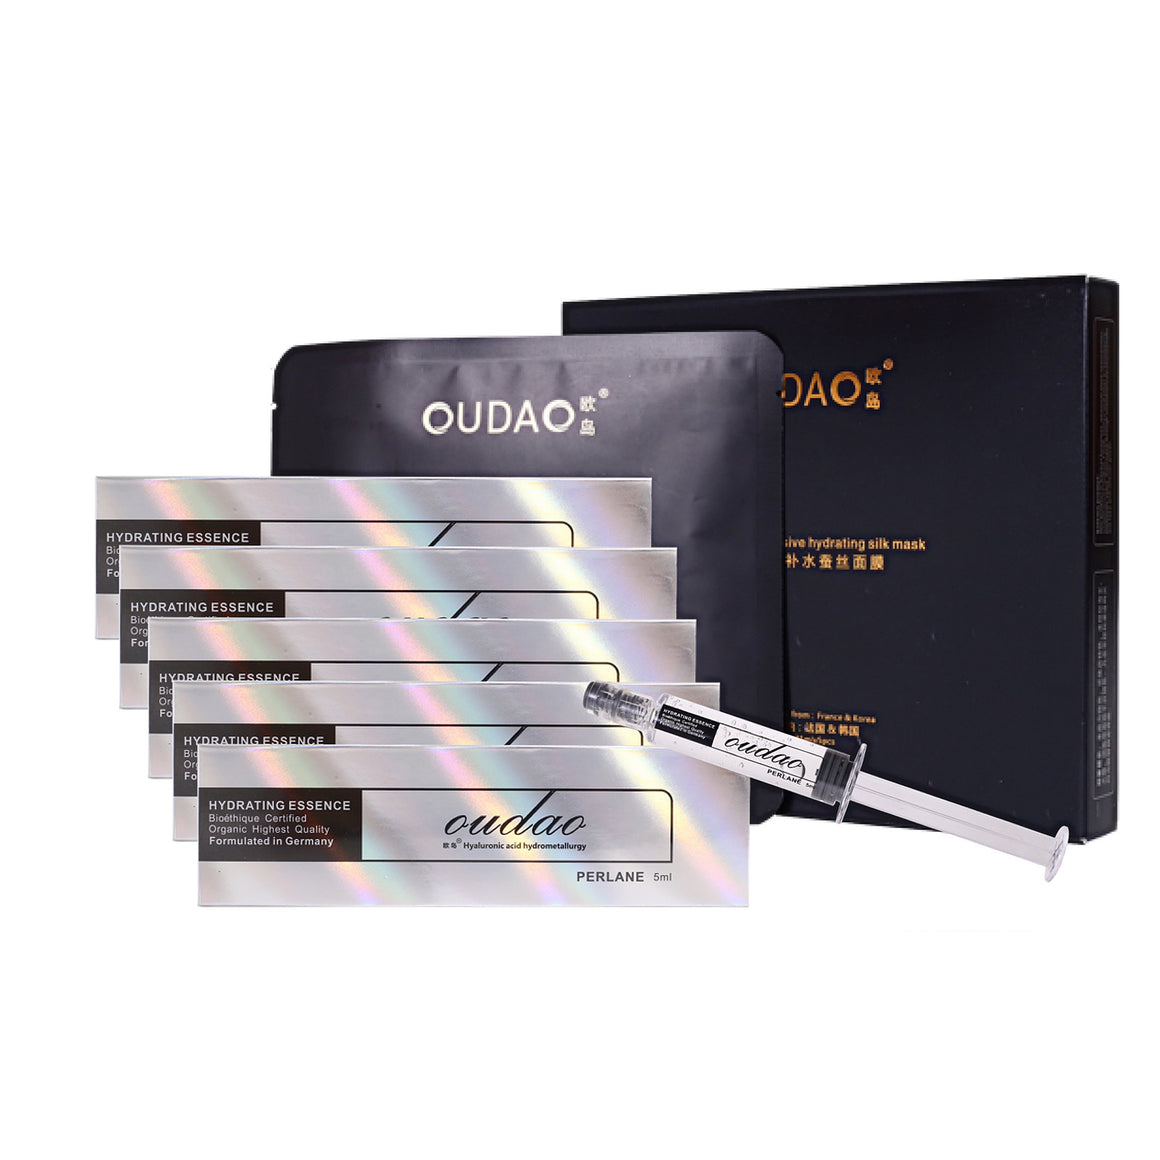 Oudao® Intensive Hydrating Home-care Treatment